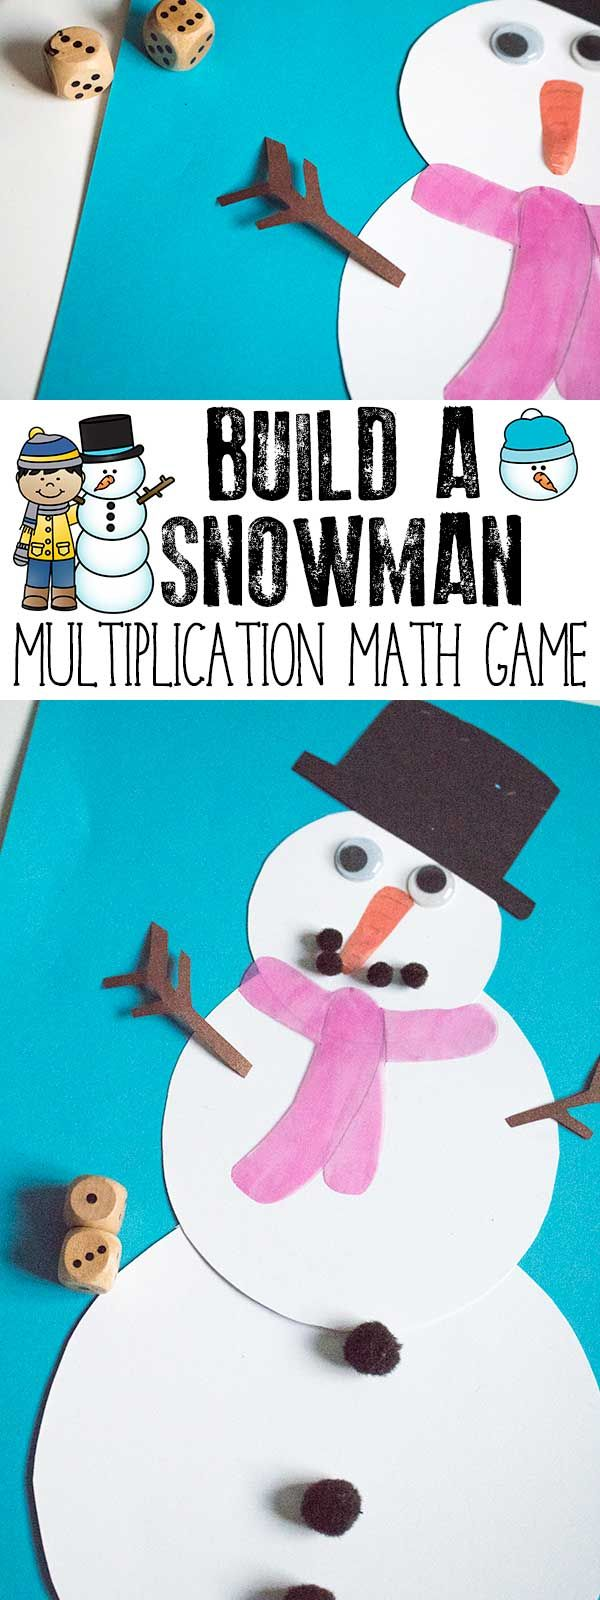 552 best Math Activities images on Pinterest | Activities for kids ...